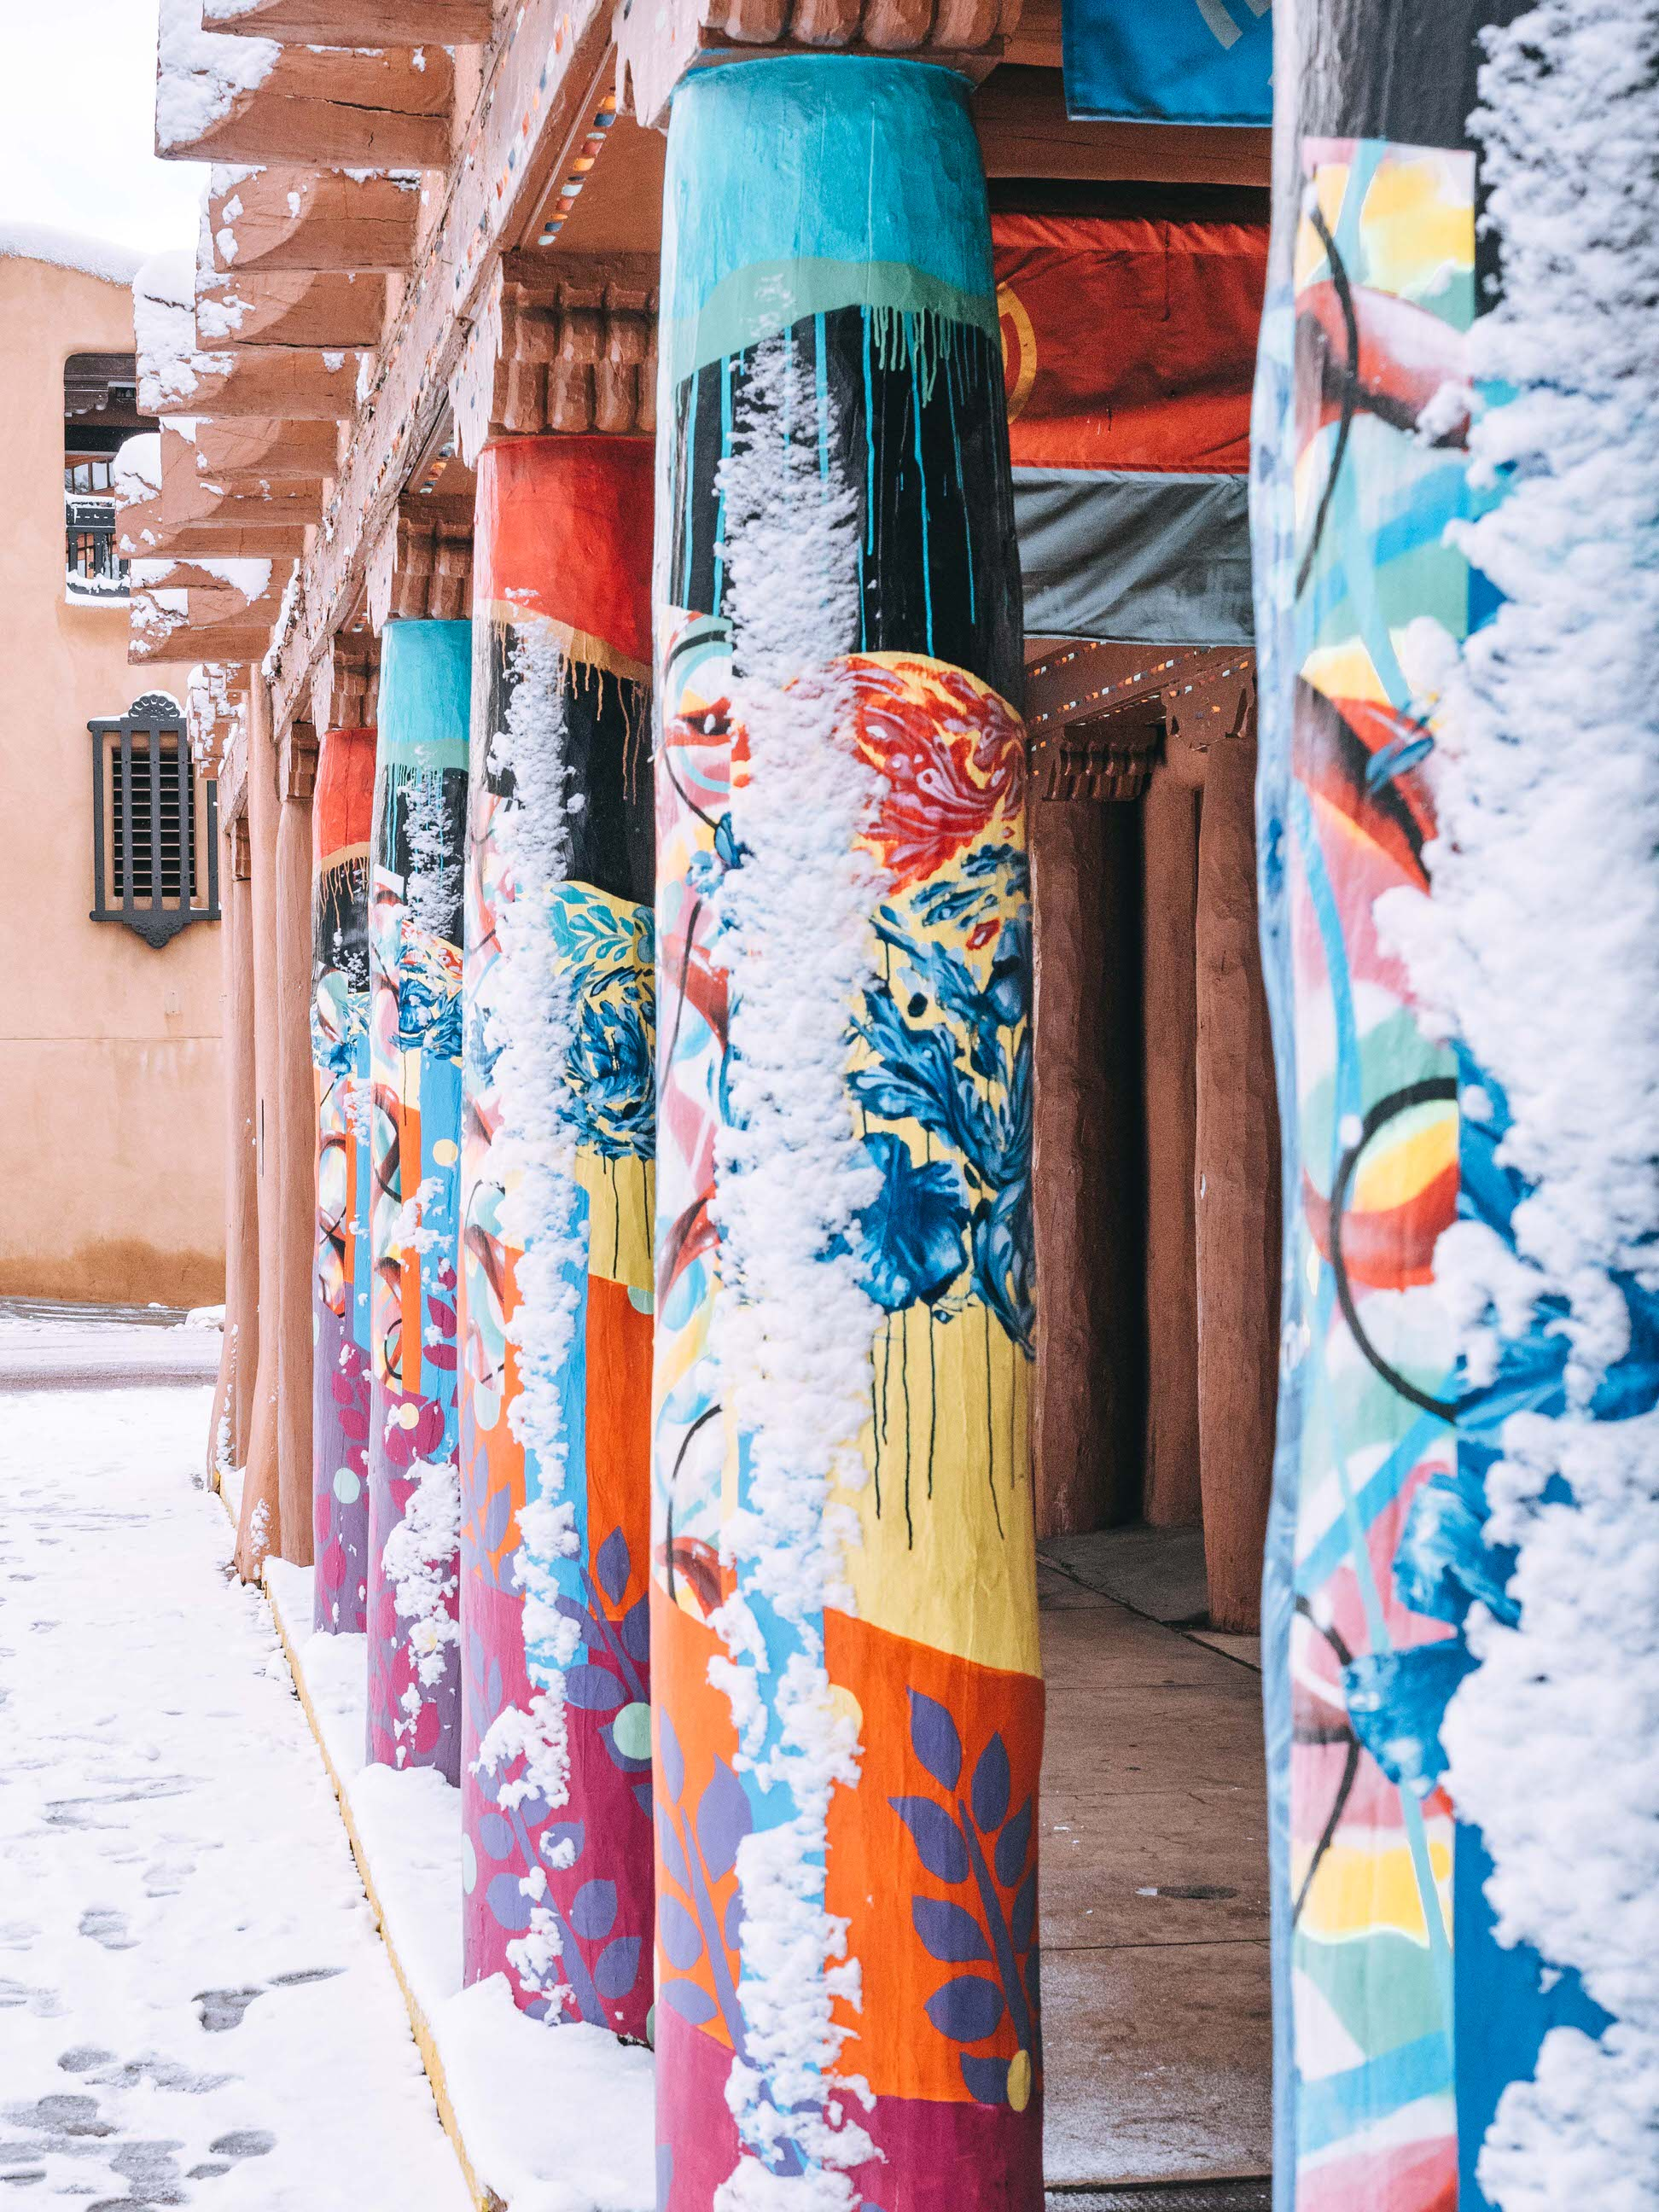 There are a lot of reasons why you should visit Santa Fe: the countless art galleries, the amazing local food, the unique museums and even the shopping! But visiting Santa Fe, New Mexico in the winter will bring the warmth of the Southwest to your cold weather vacation, even when there is snow on the ground. Make sure you add Santa Fe to your winter travel bucket list! #travel #santafe #itinerary